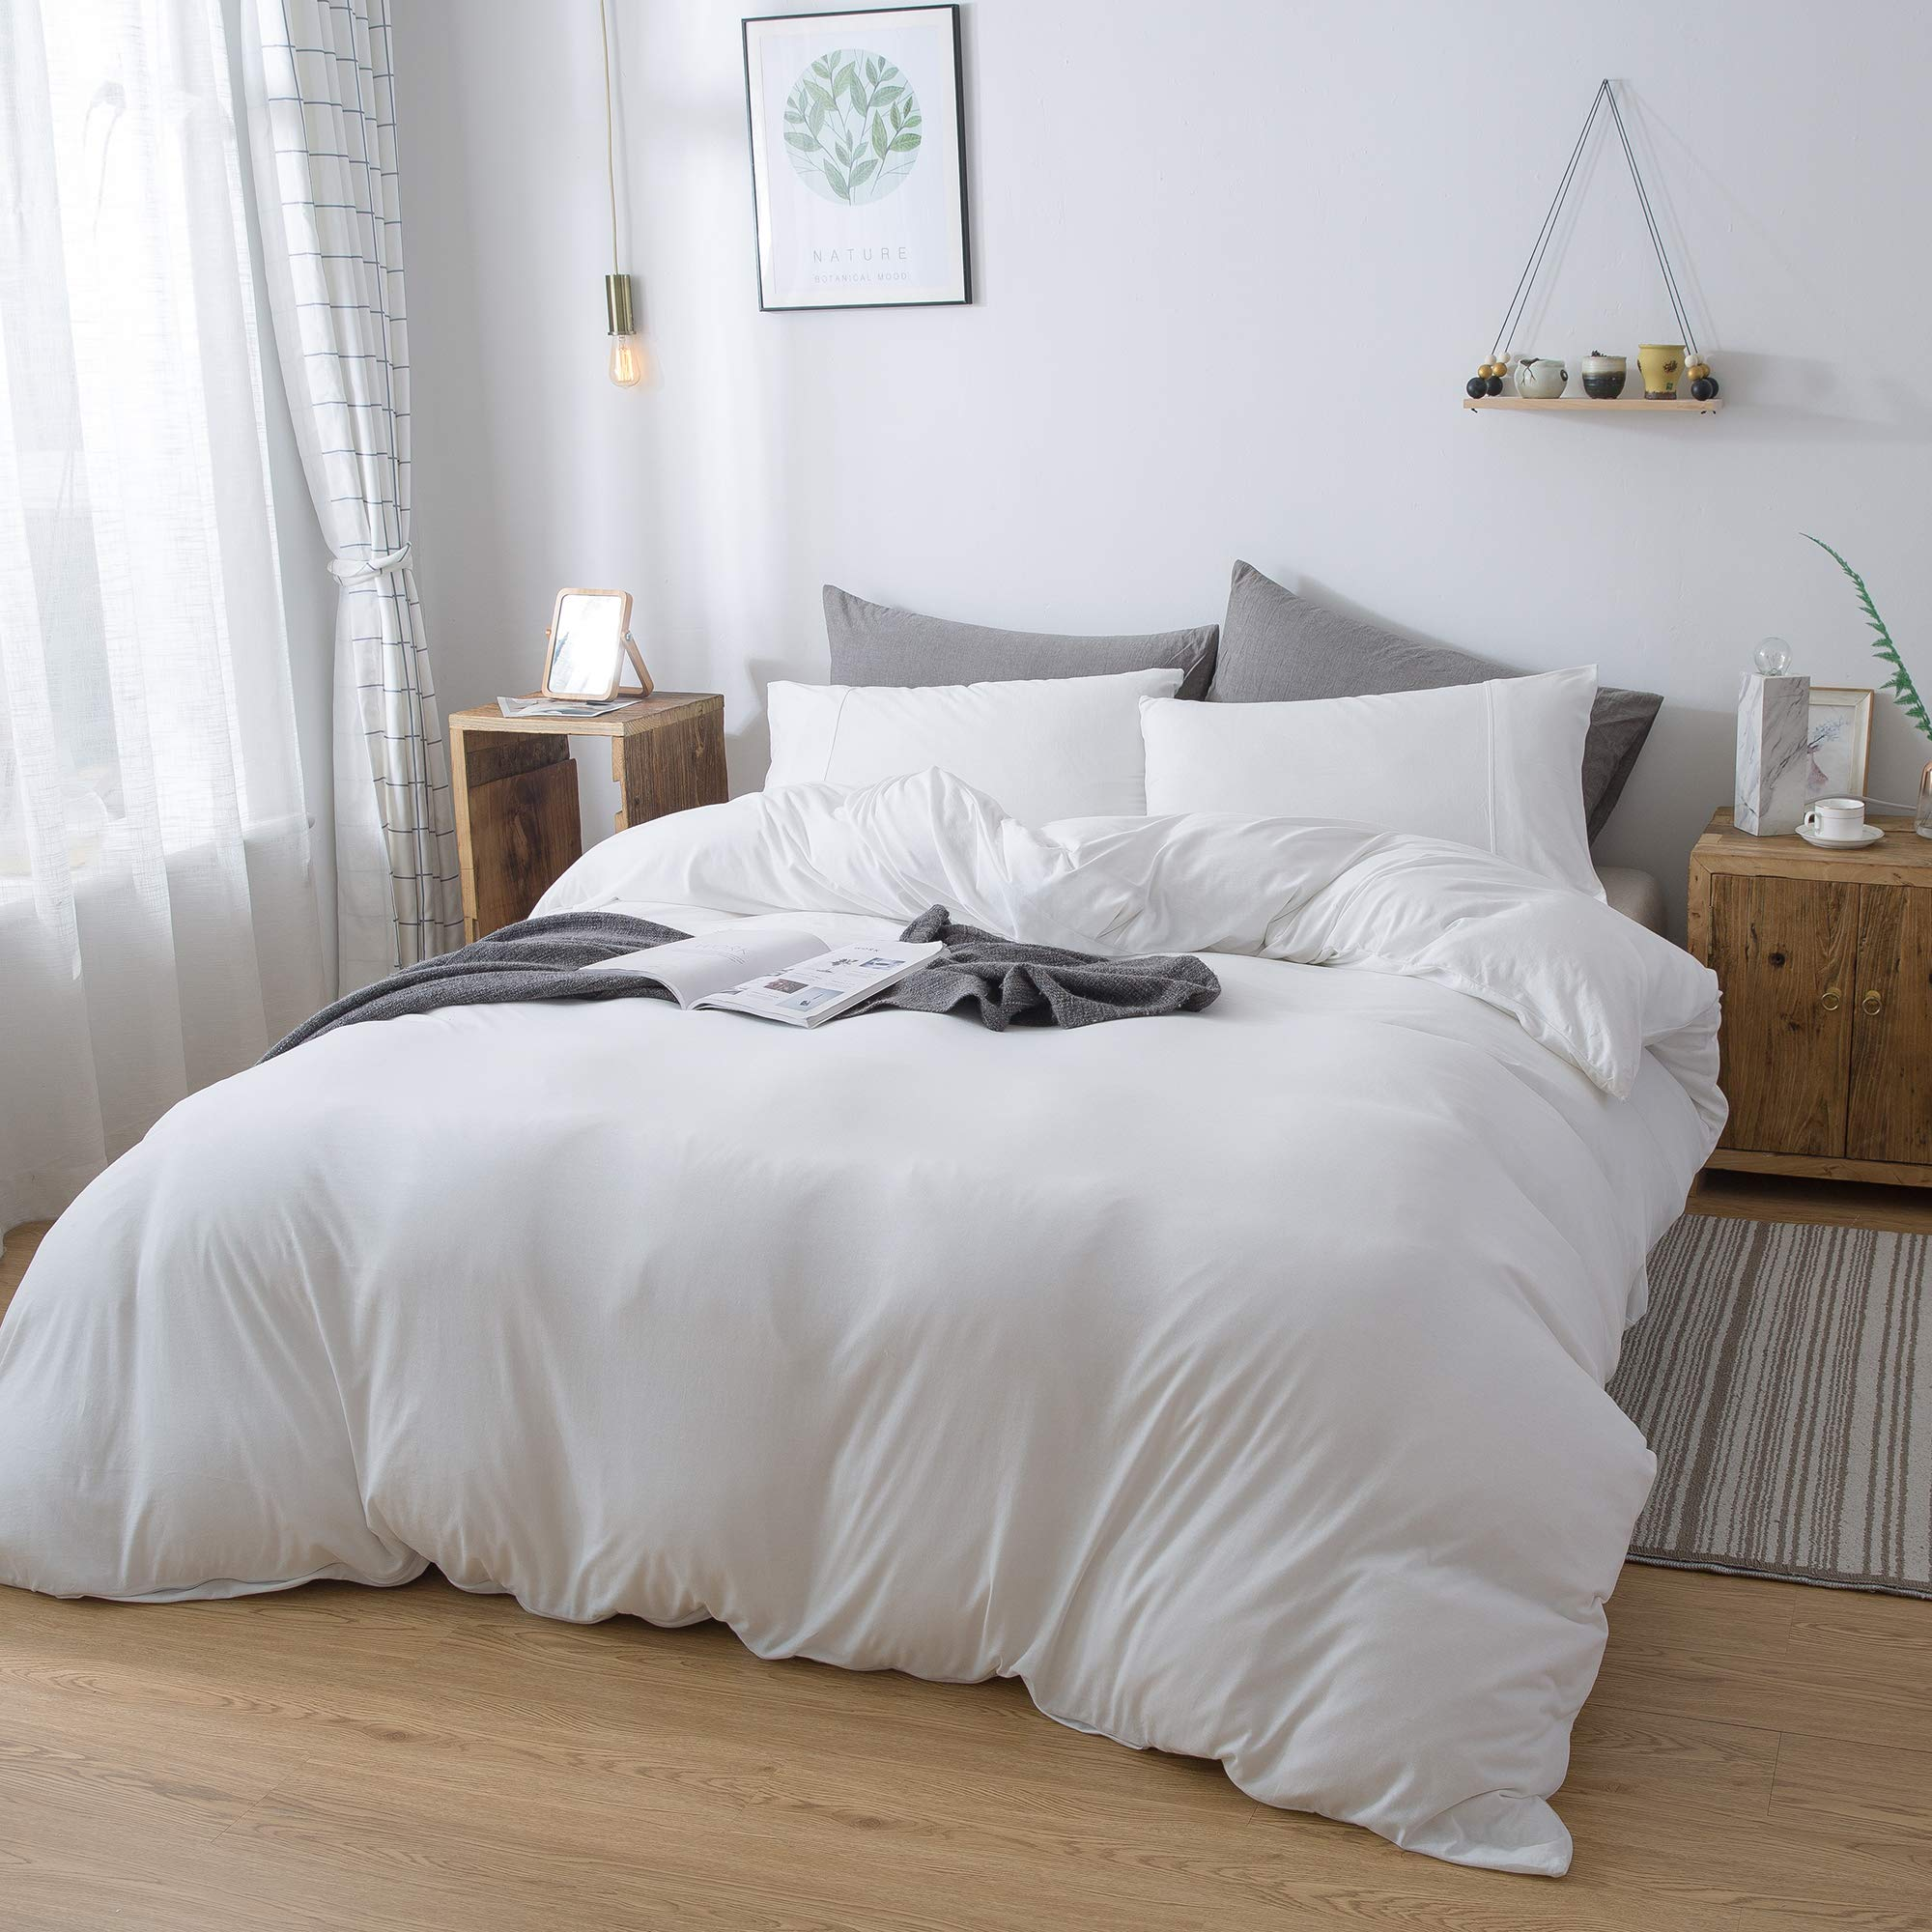 Household 100% Cotton Jersey Knit Duvet Cover Comfortable, Super Soft Includes 2 Pillowcase (White Queen)